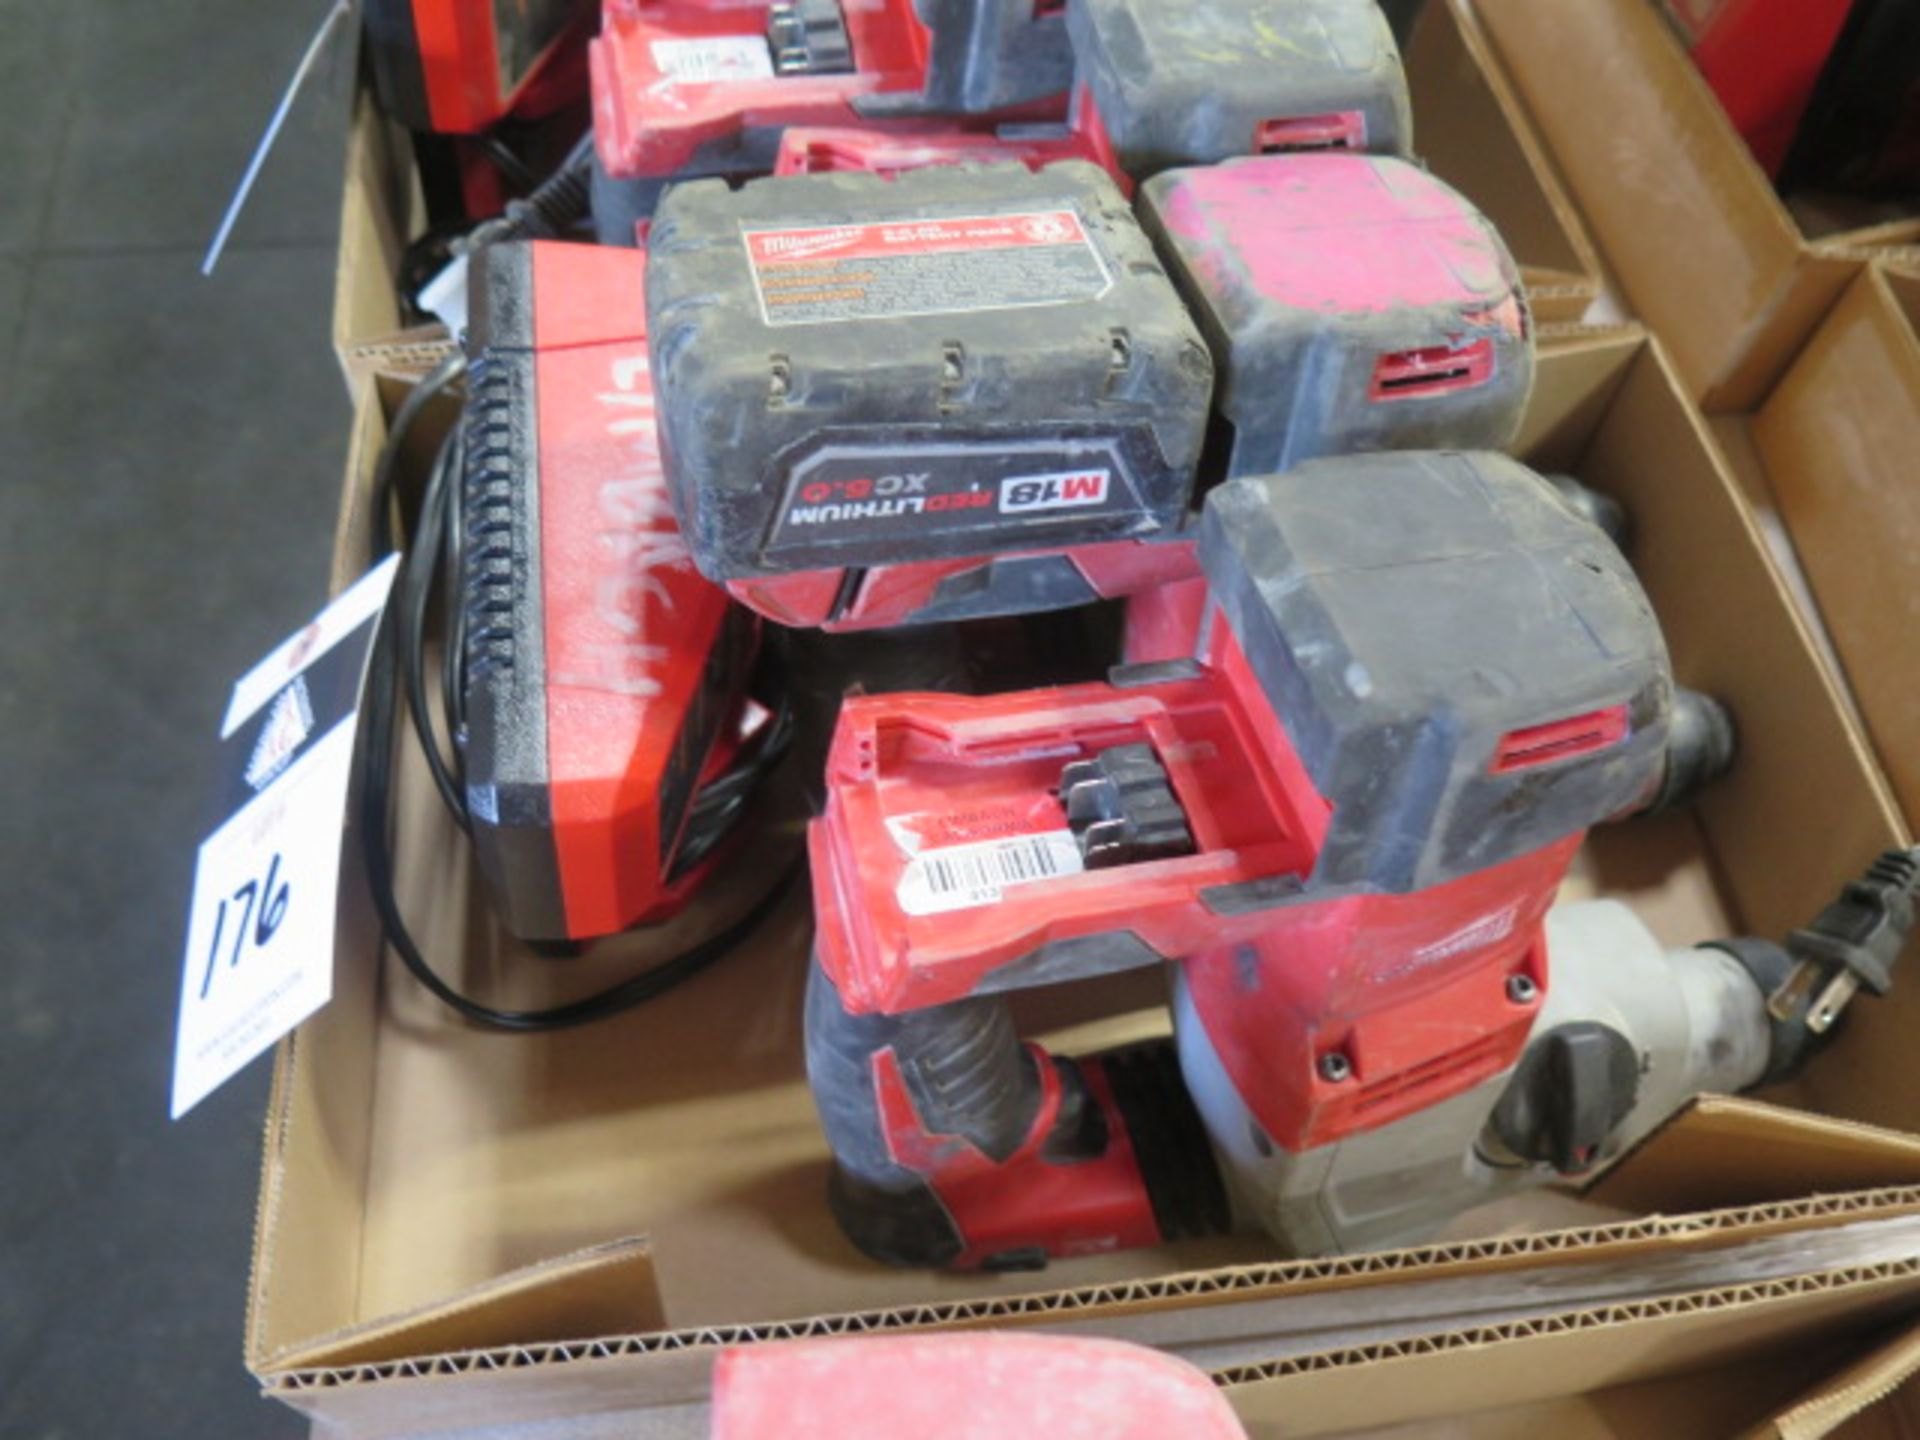 Milwaukee 18 Volt Rotary Hammers (3) (SOLD AS-IS - NO WARRANTY) - Image 2 of 5